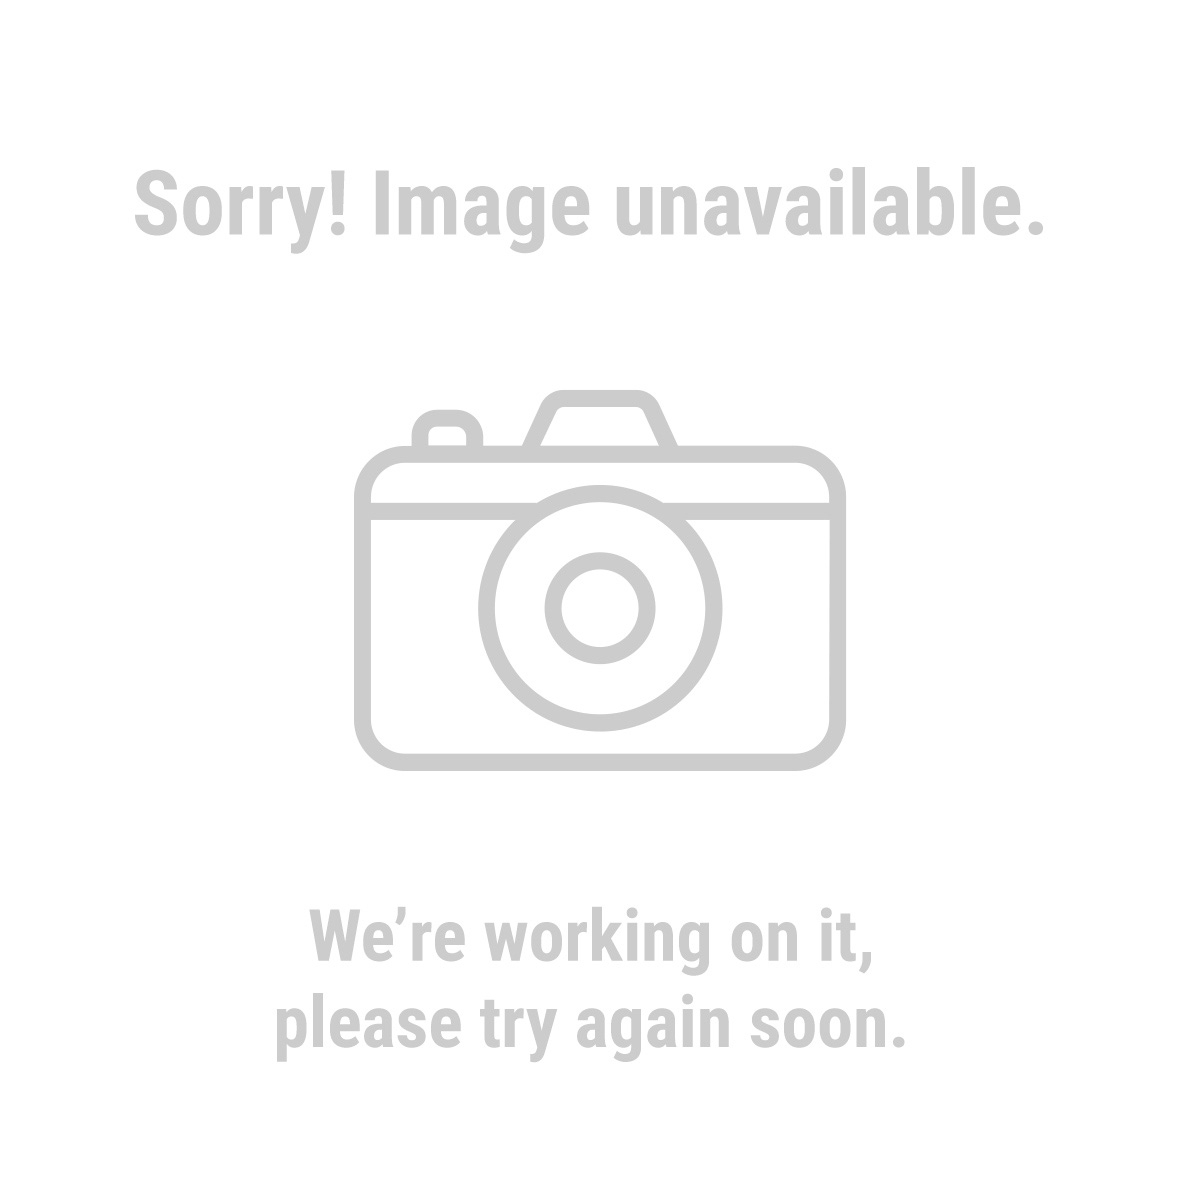 Central Forge 5982 No. 2 Pipe Cutter